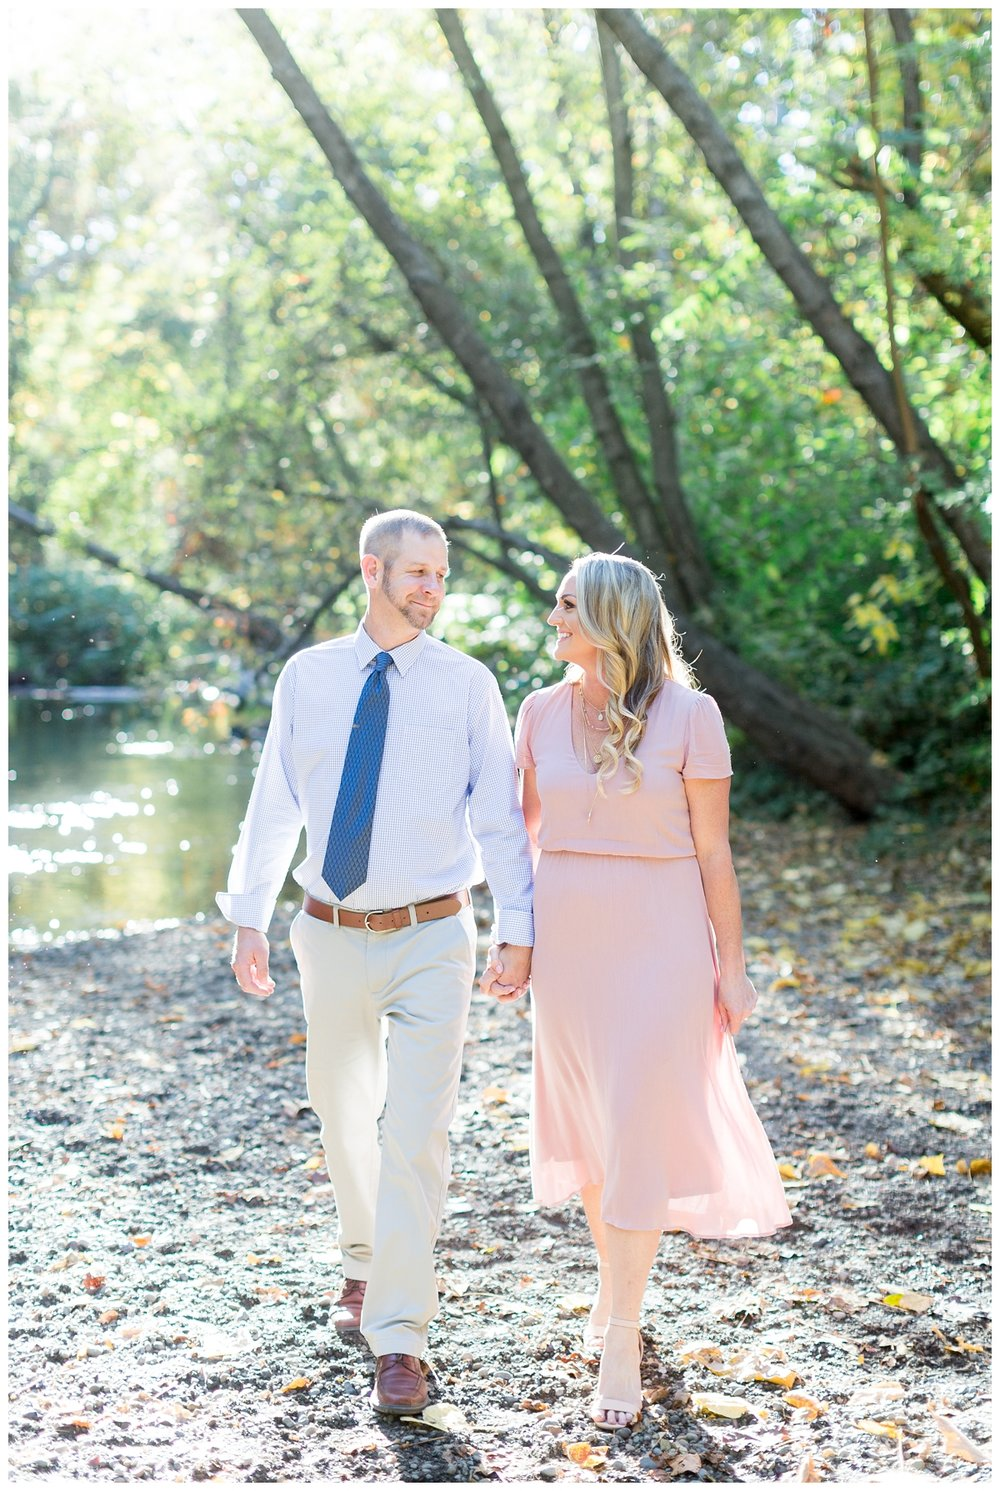 super cute couple walking hand in hand together for their engagement photo session in Chico California in Lower Bidwell Park